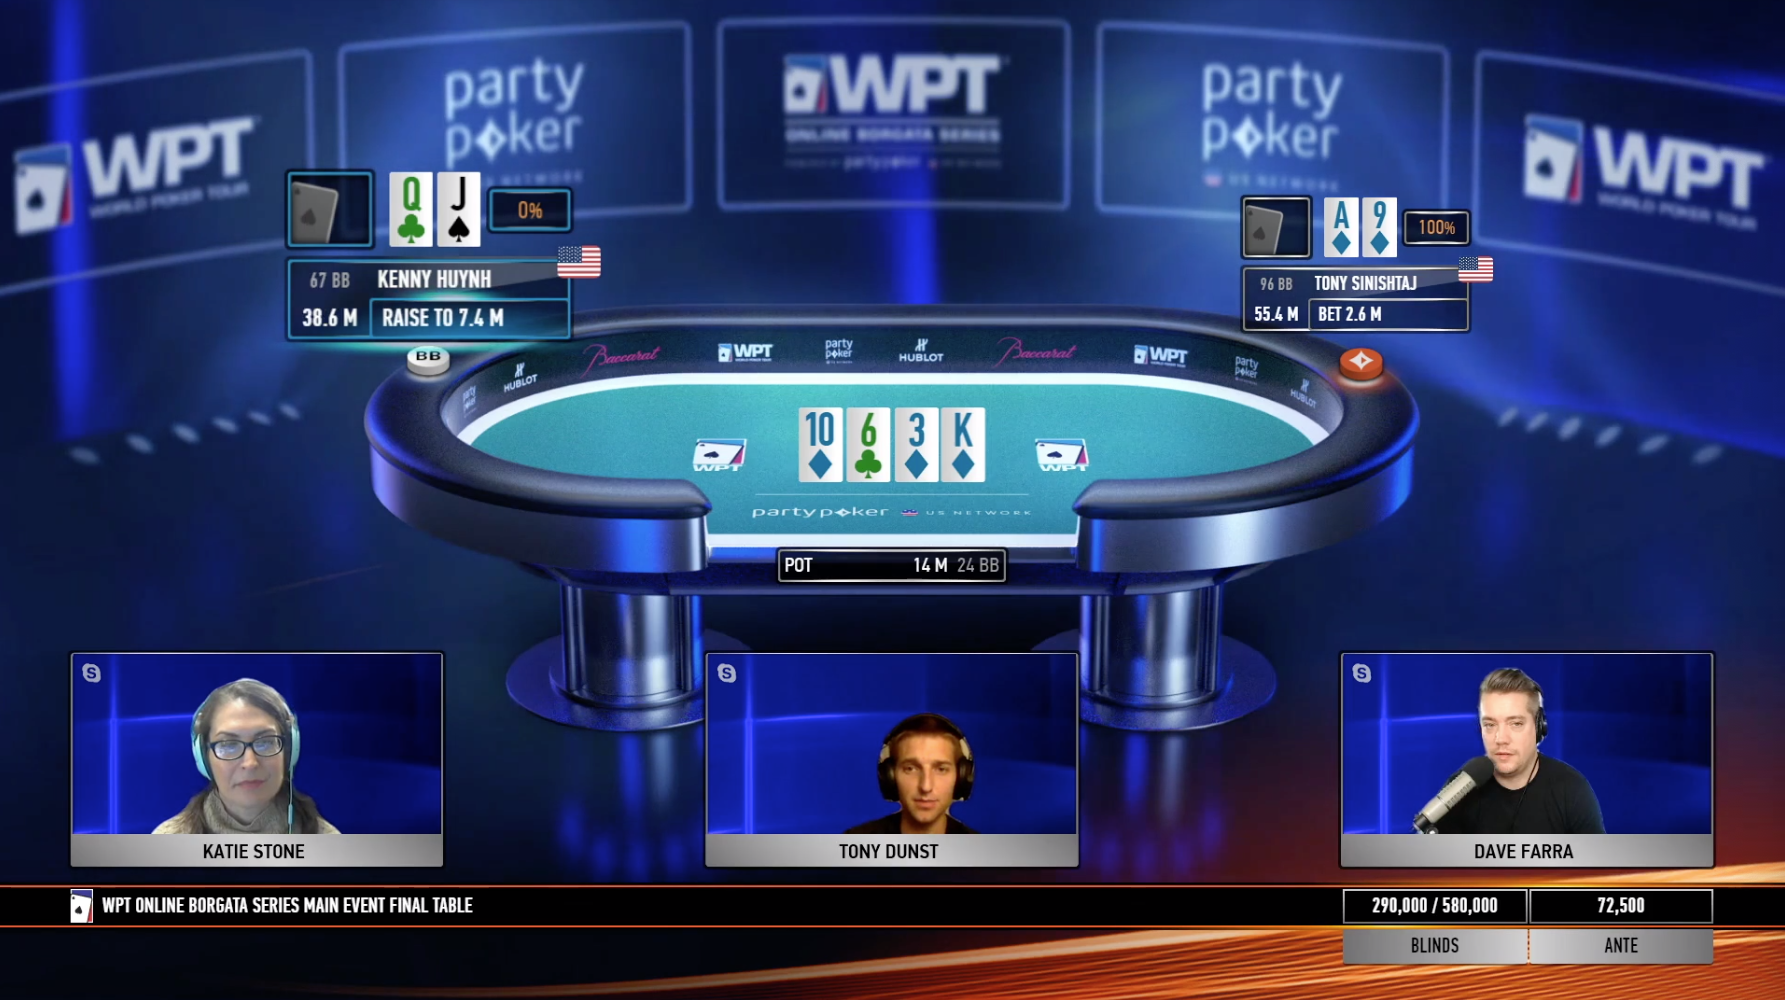 Kenny Huynh Semi-Bluffs Into the Nuts